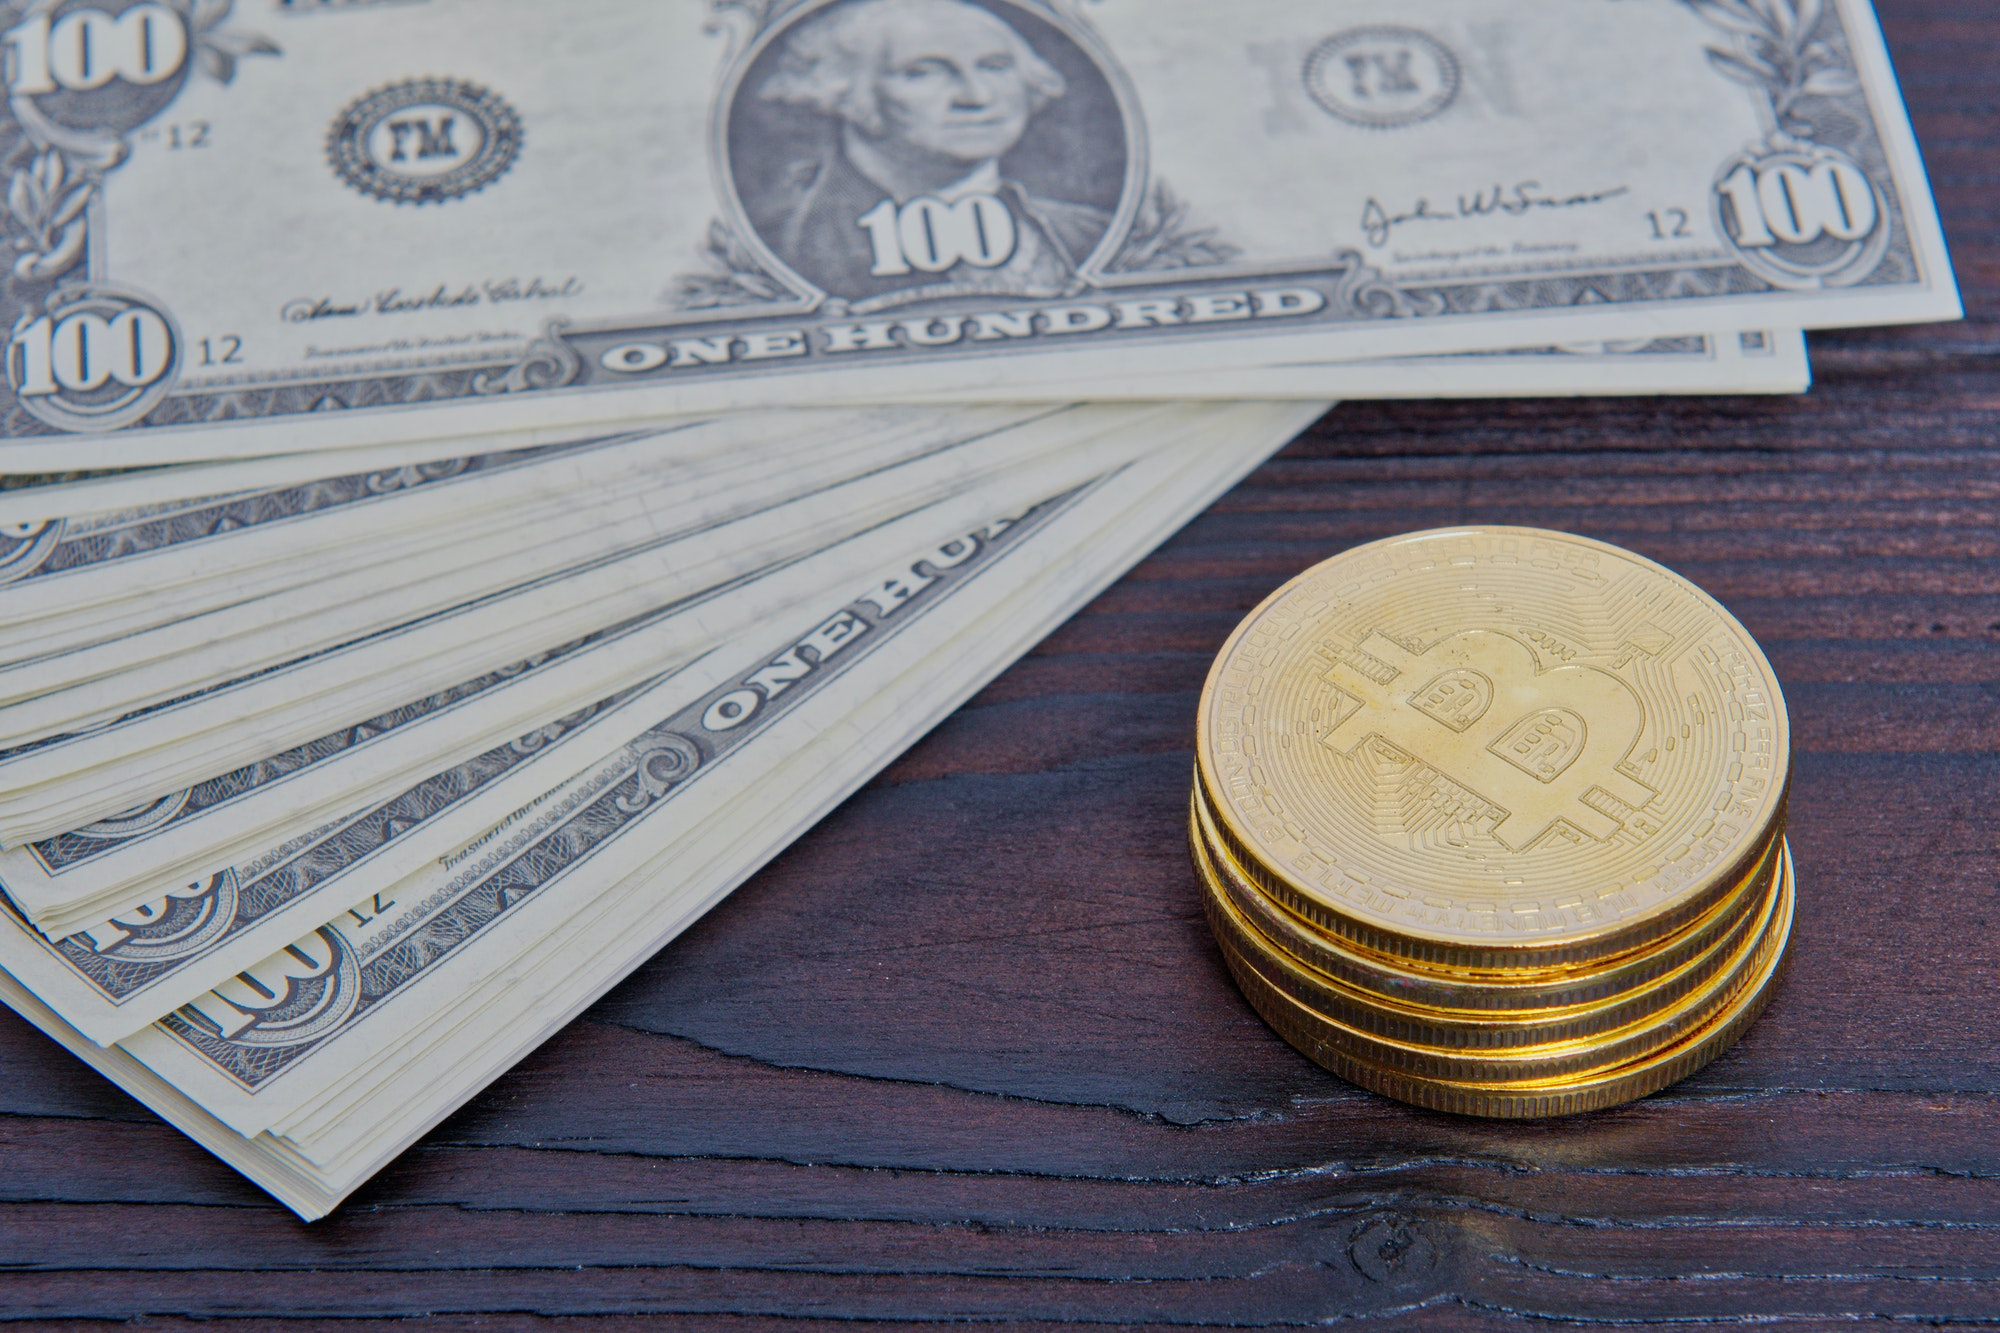 Dollar banknotes and Bitcoins on a table